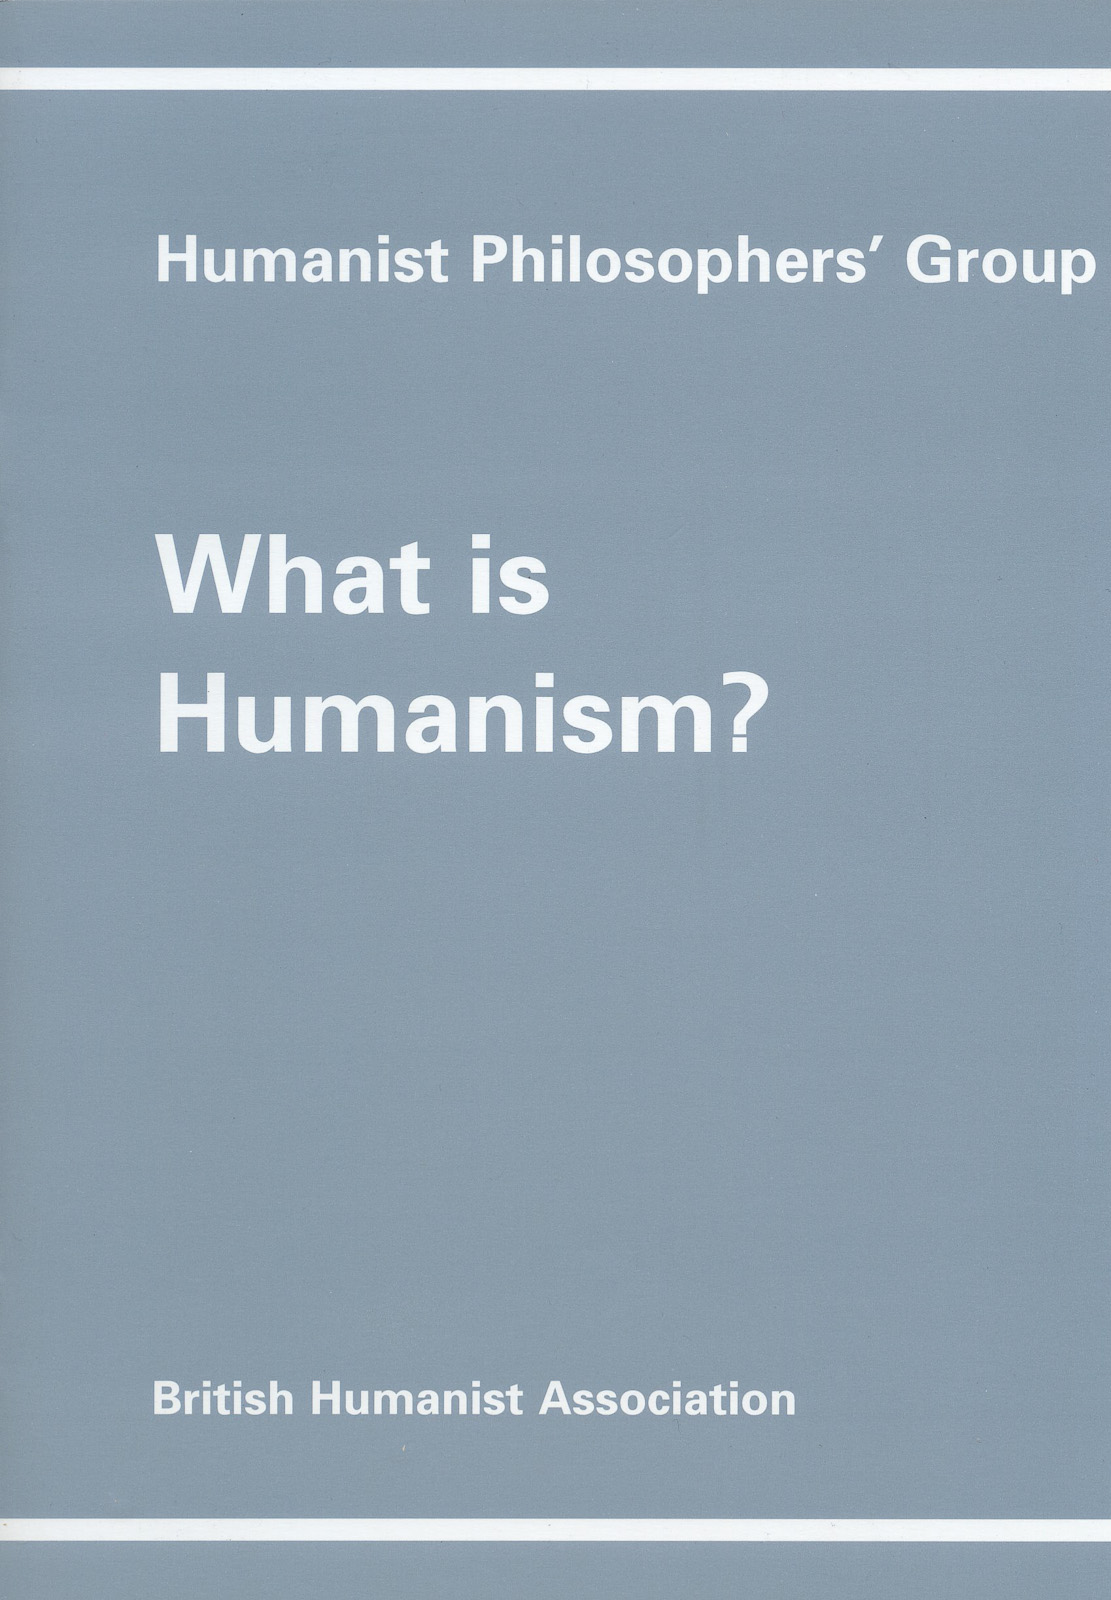 philosophy books british humanist association what is humanism